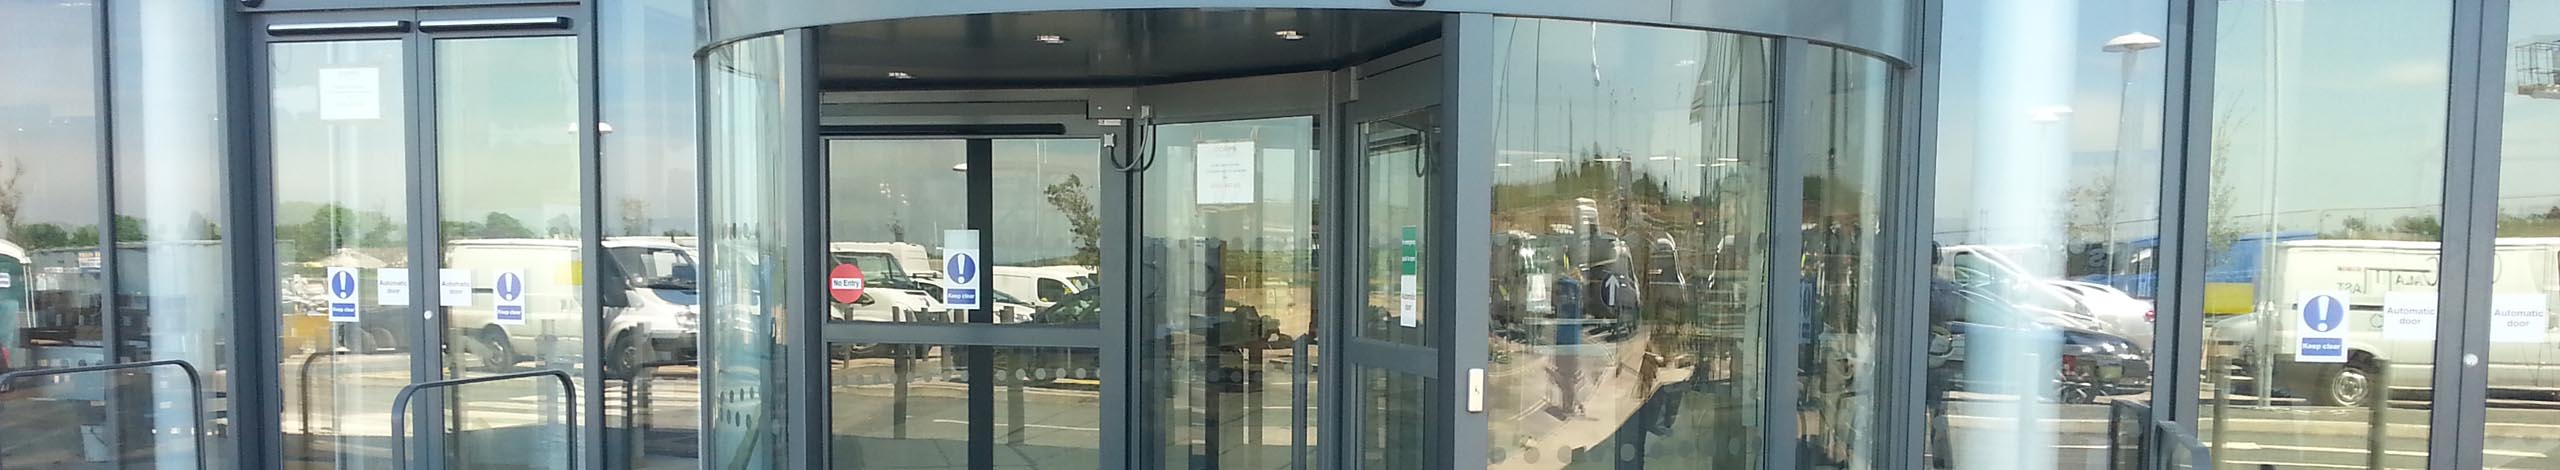 Automatic door servicing